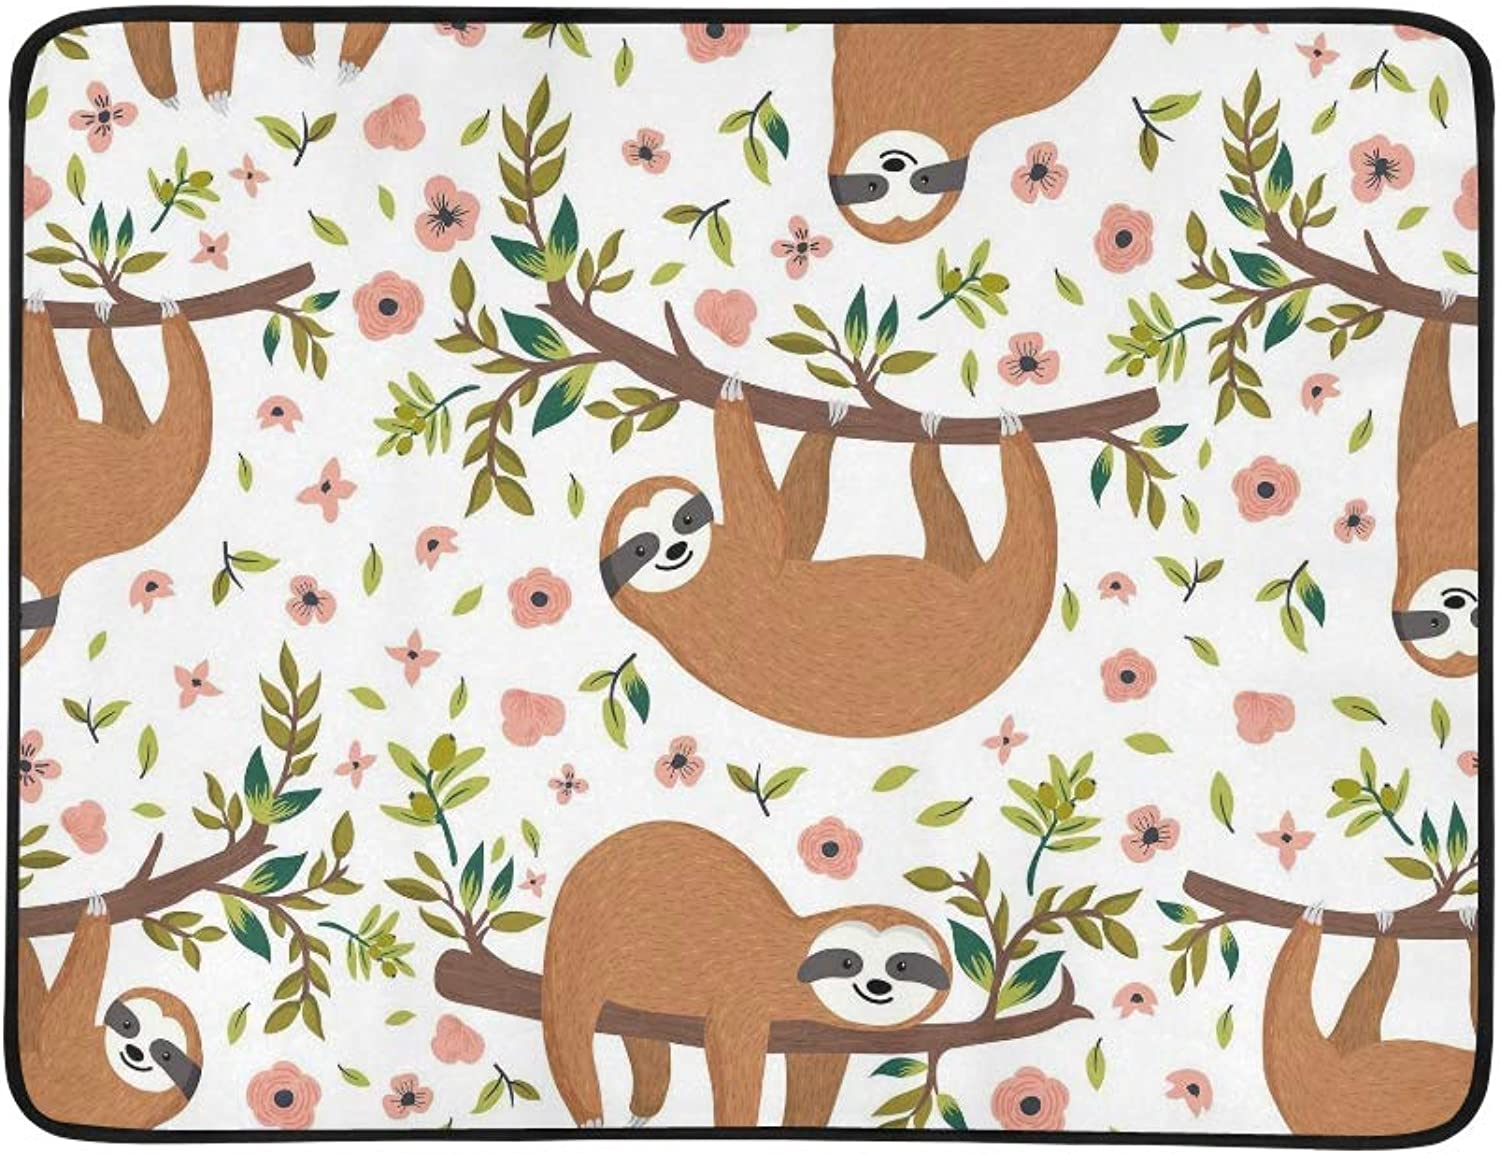 Cute Animal Sloth On Tree Flower Pattern Portable and Foldable Blanket Mat 60x78 Inch Handy Mat for Camping Picnic Beach Indoor Outdoor Travel